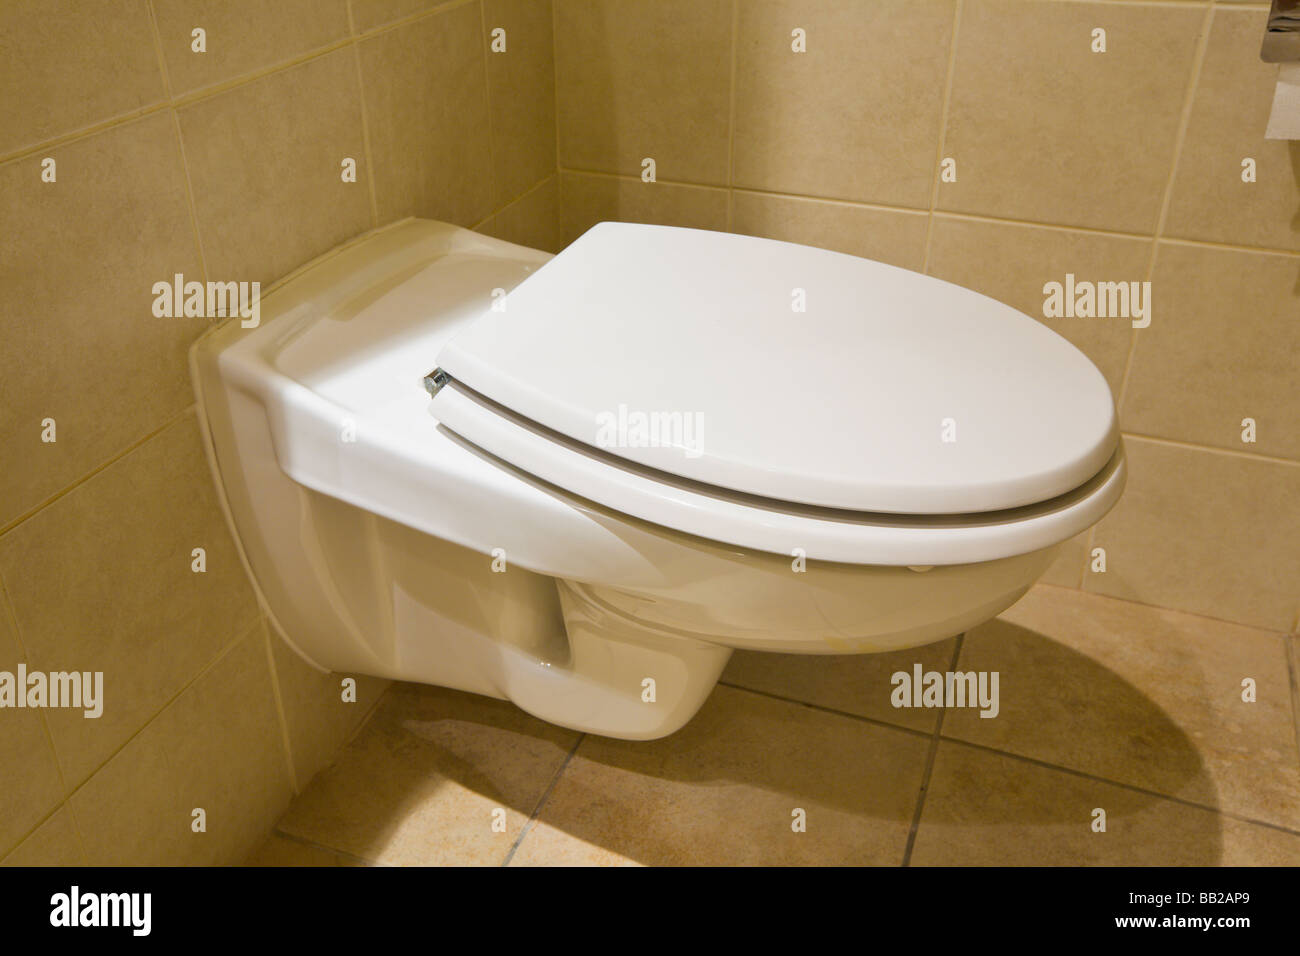 Wall Hung Wc Stock Photos Wall Hung Wc Stock Images Alamy